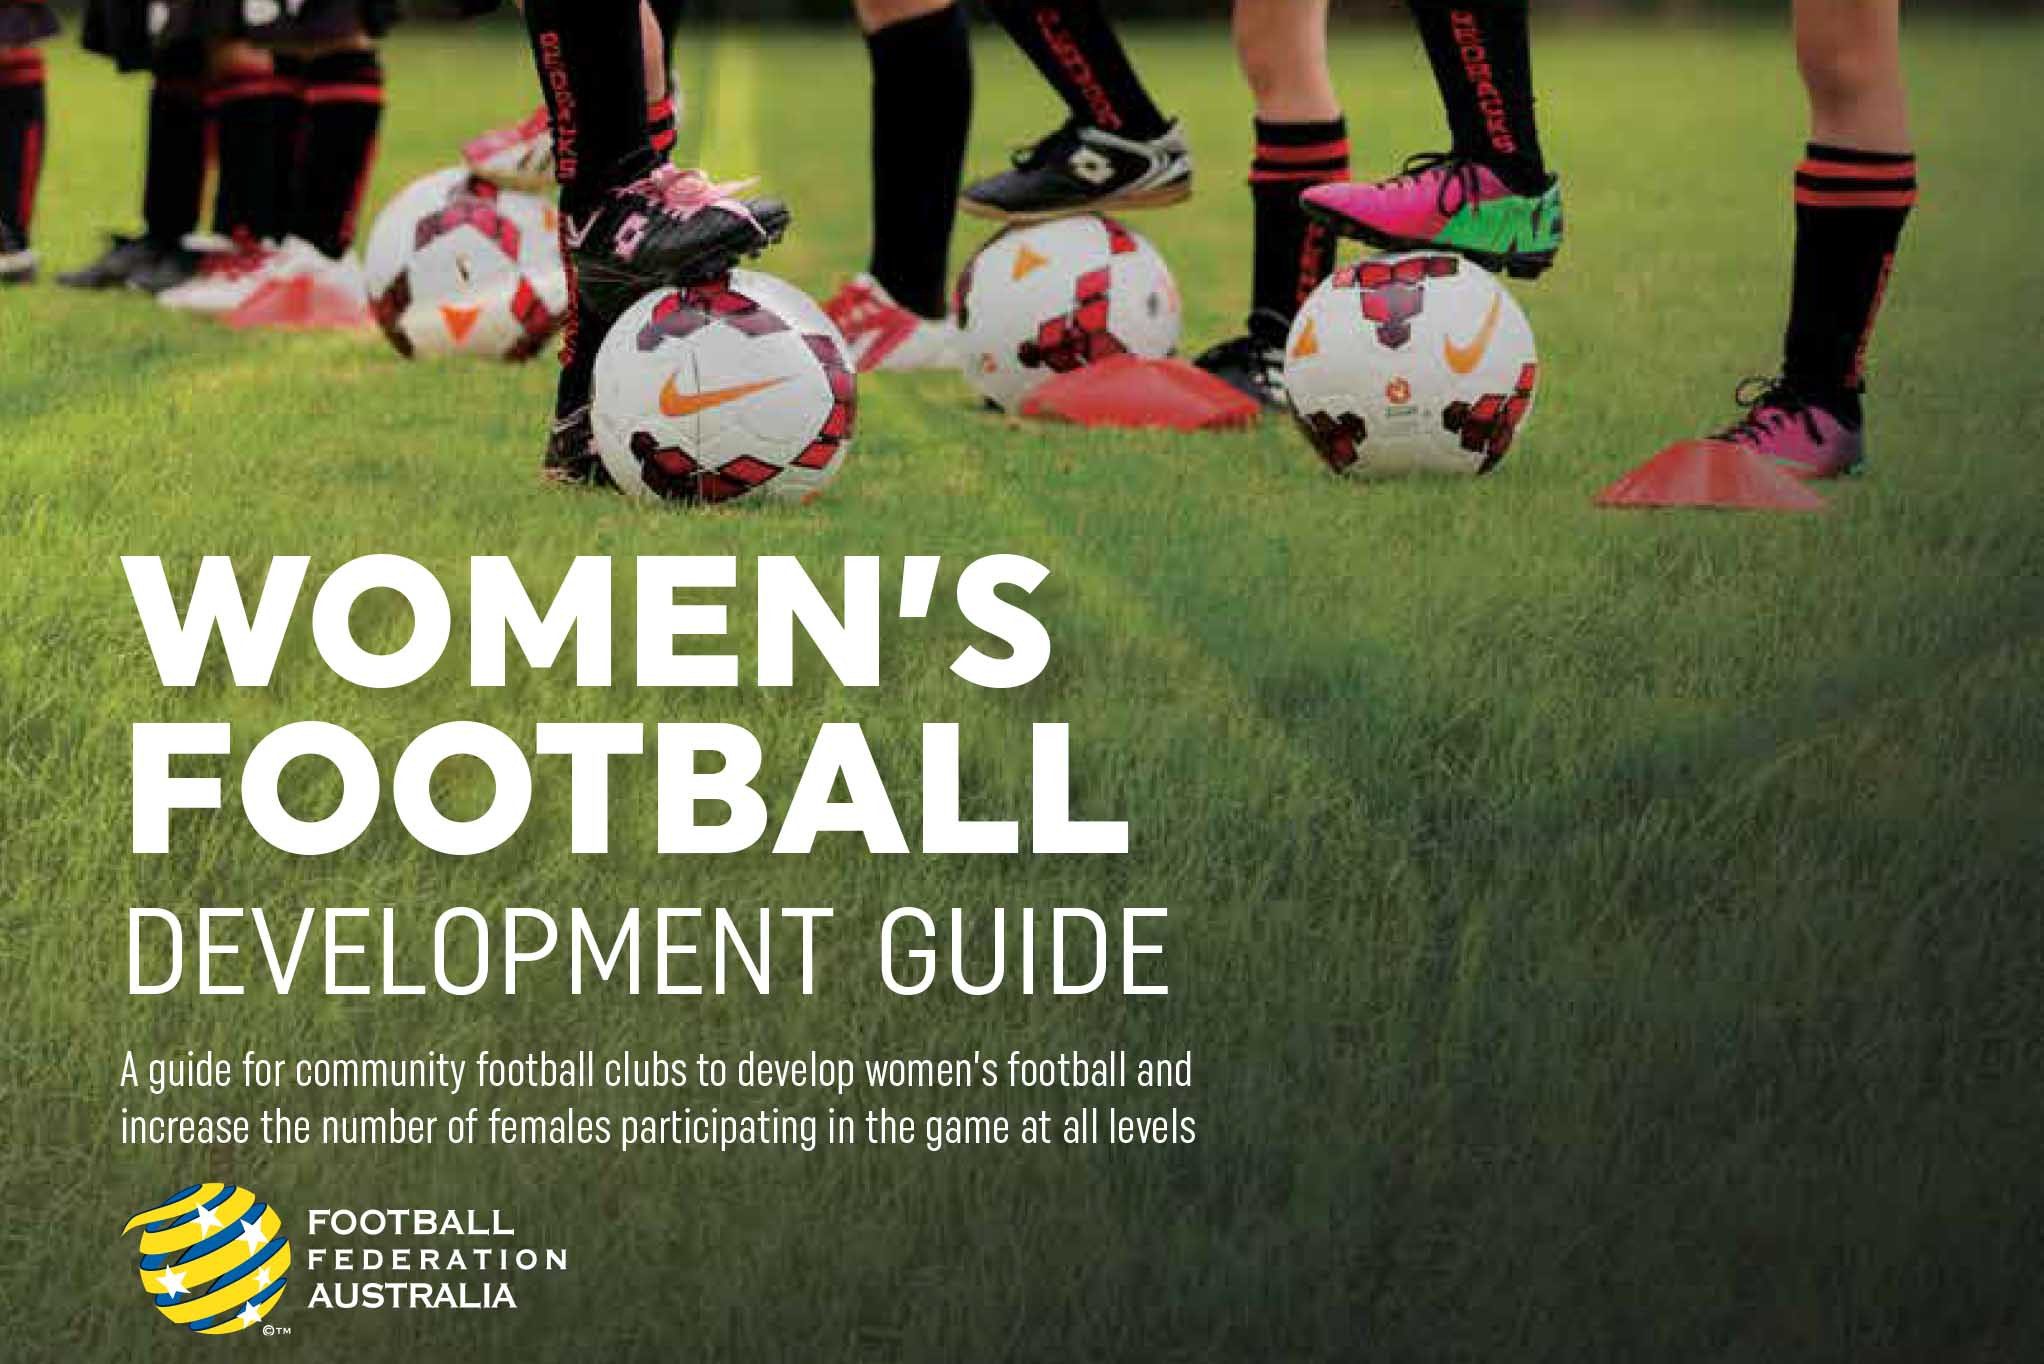 Image of a soccer pitch with the feet of soccer player with each foot resting on a soccer ball. Text reads women's football development guide. The Football Federation Australia logo appears at the bottom of the image.